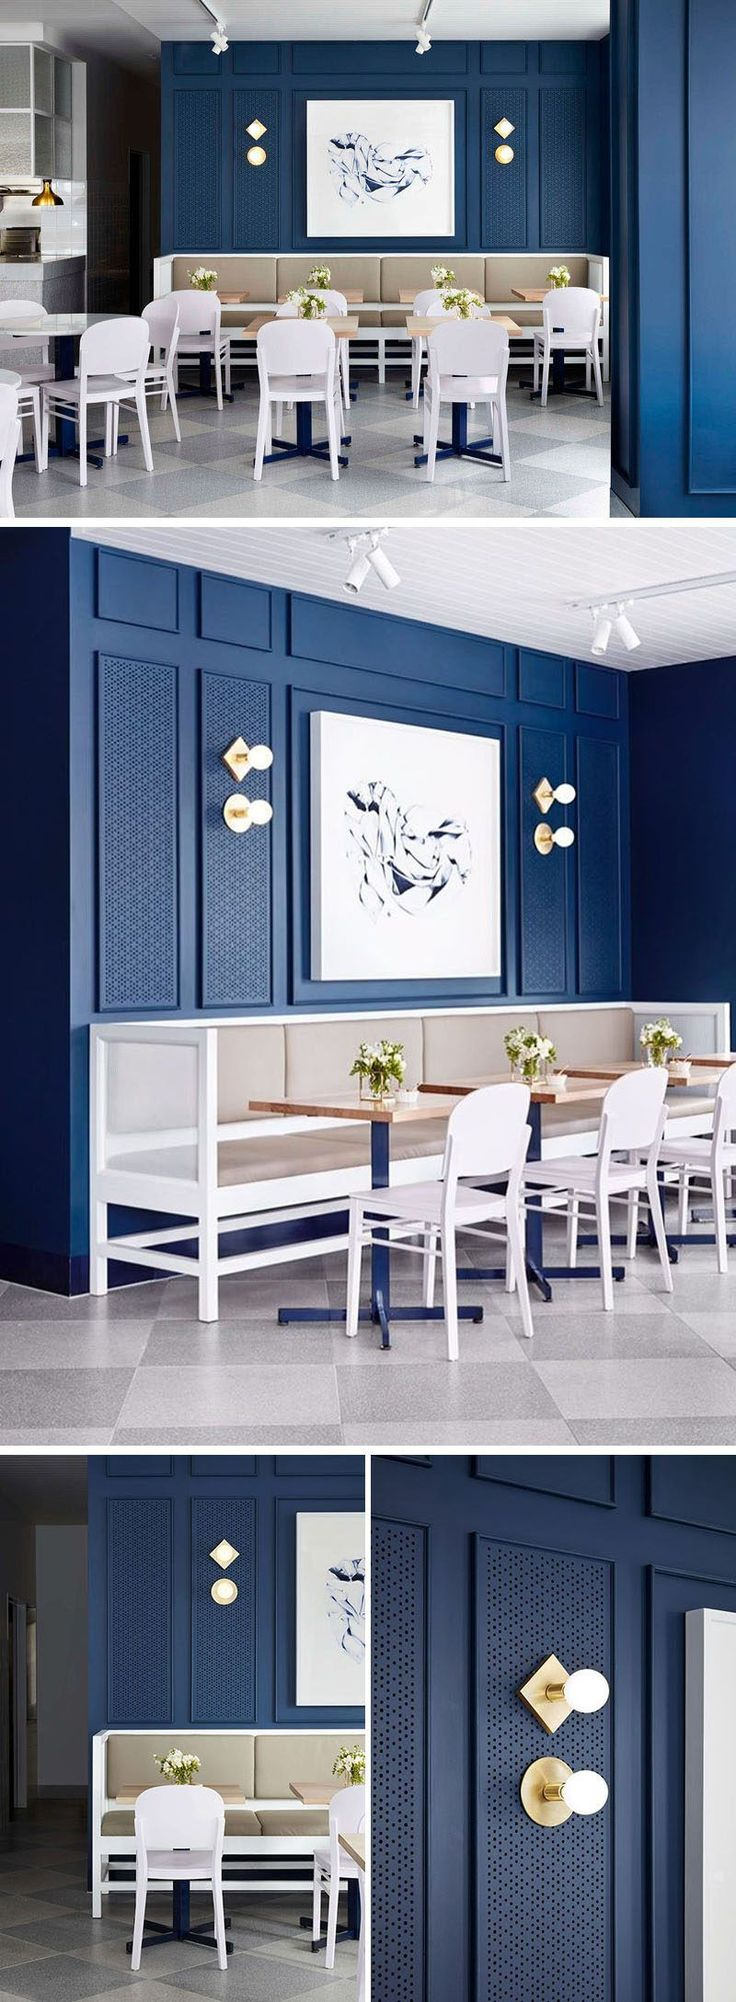 Artwork above the banquette seating in this cafe has been perfectly framed with moulding and lighting.MADO MADO MADO